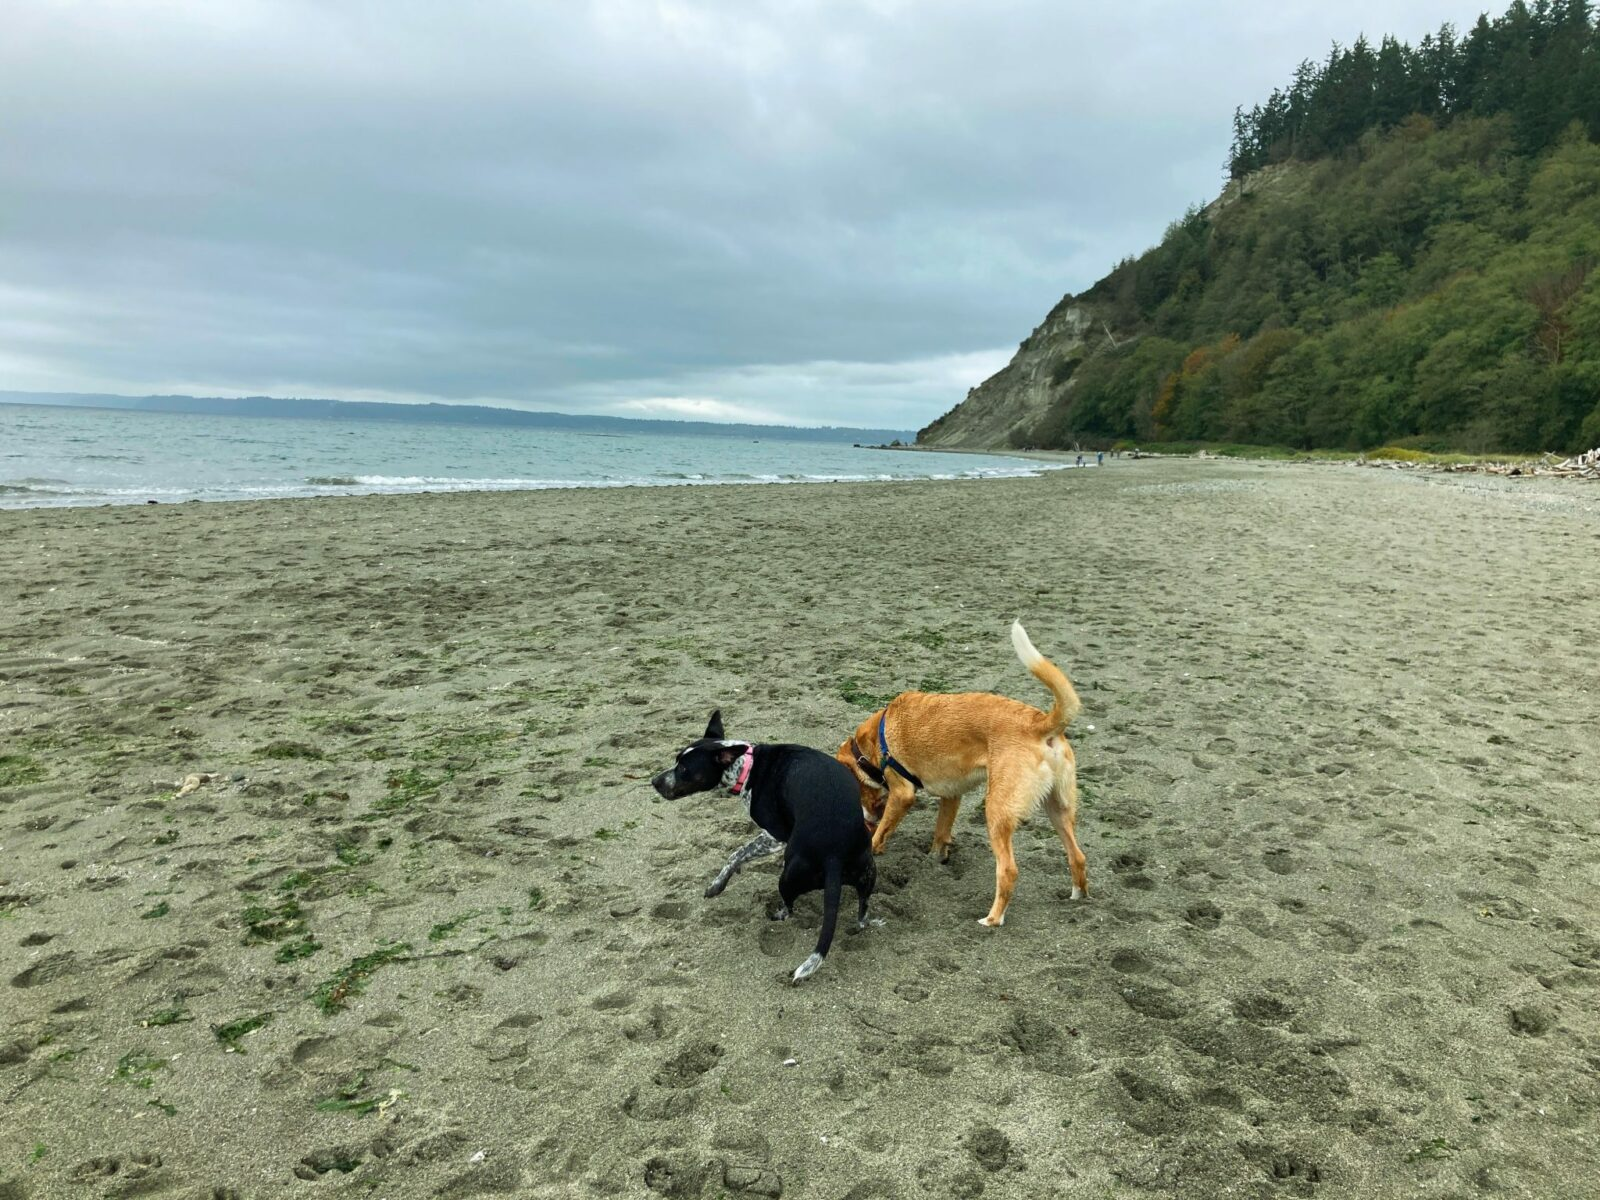 Two dogs, one black and white and one tan and white play on a gray sand beach. There is a forested hillside behind them and the water stretches away from the beach on an overcast day